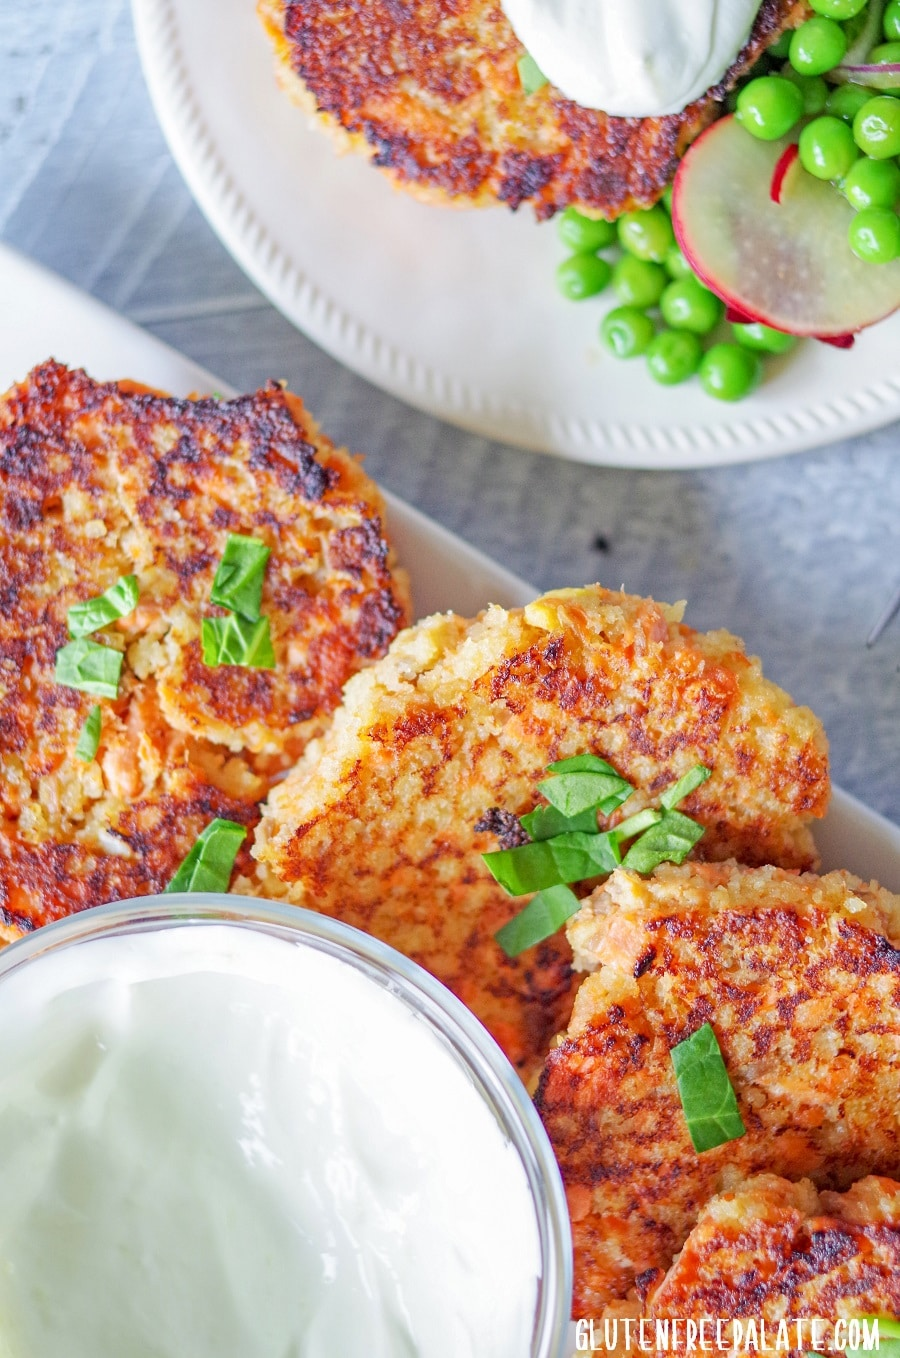 Gluten-Free Salmon Cakes on a white plate with green garnish next to a plate of salmon cakes and peas